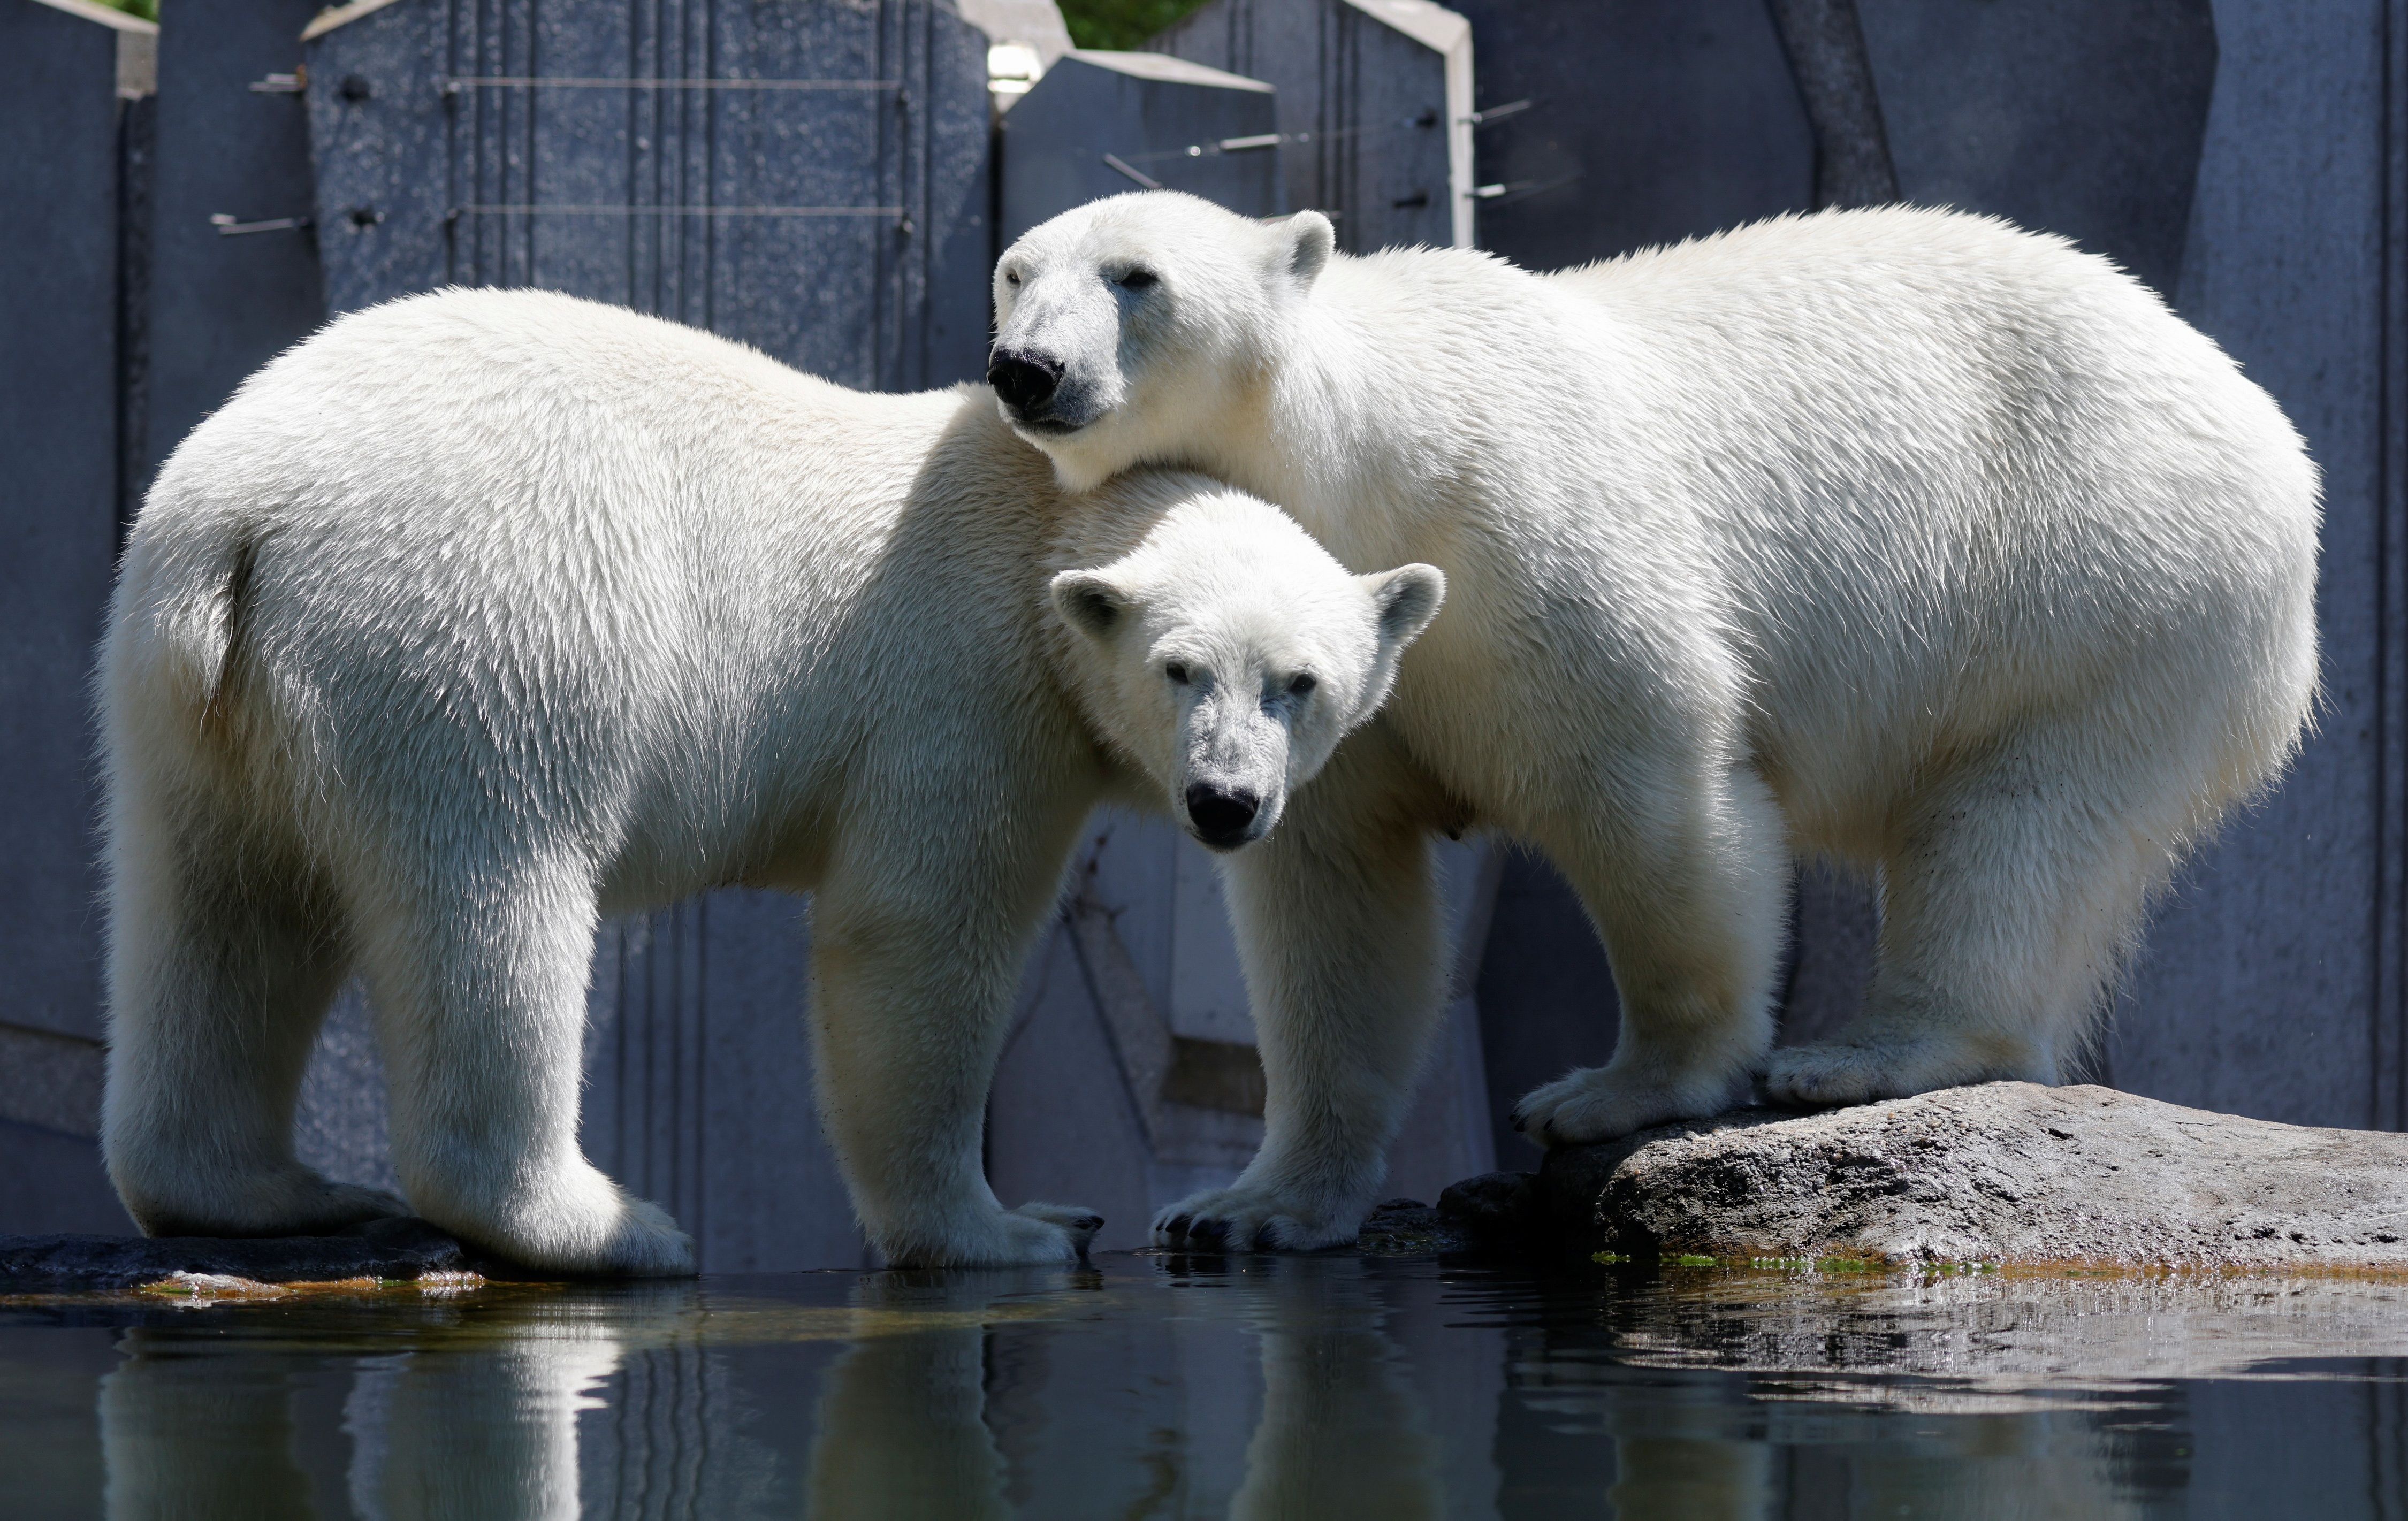 Polar bears look on in their enclosure at Schoenbrunn Zoo on a sunny day in Vienna, Austria June 17, 2021.  REUTERS/Leonhard Foeger